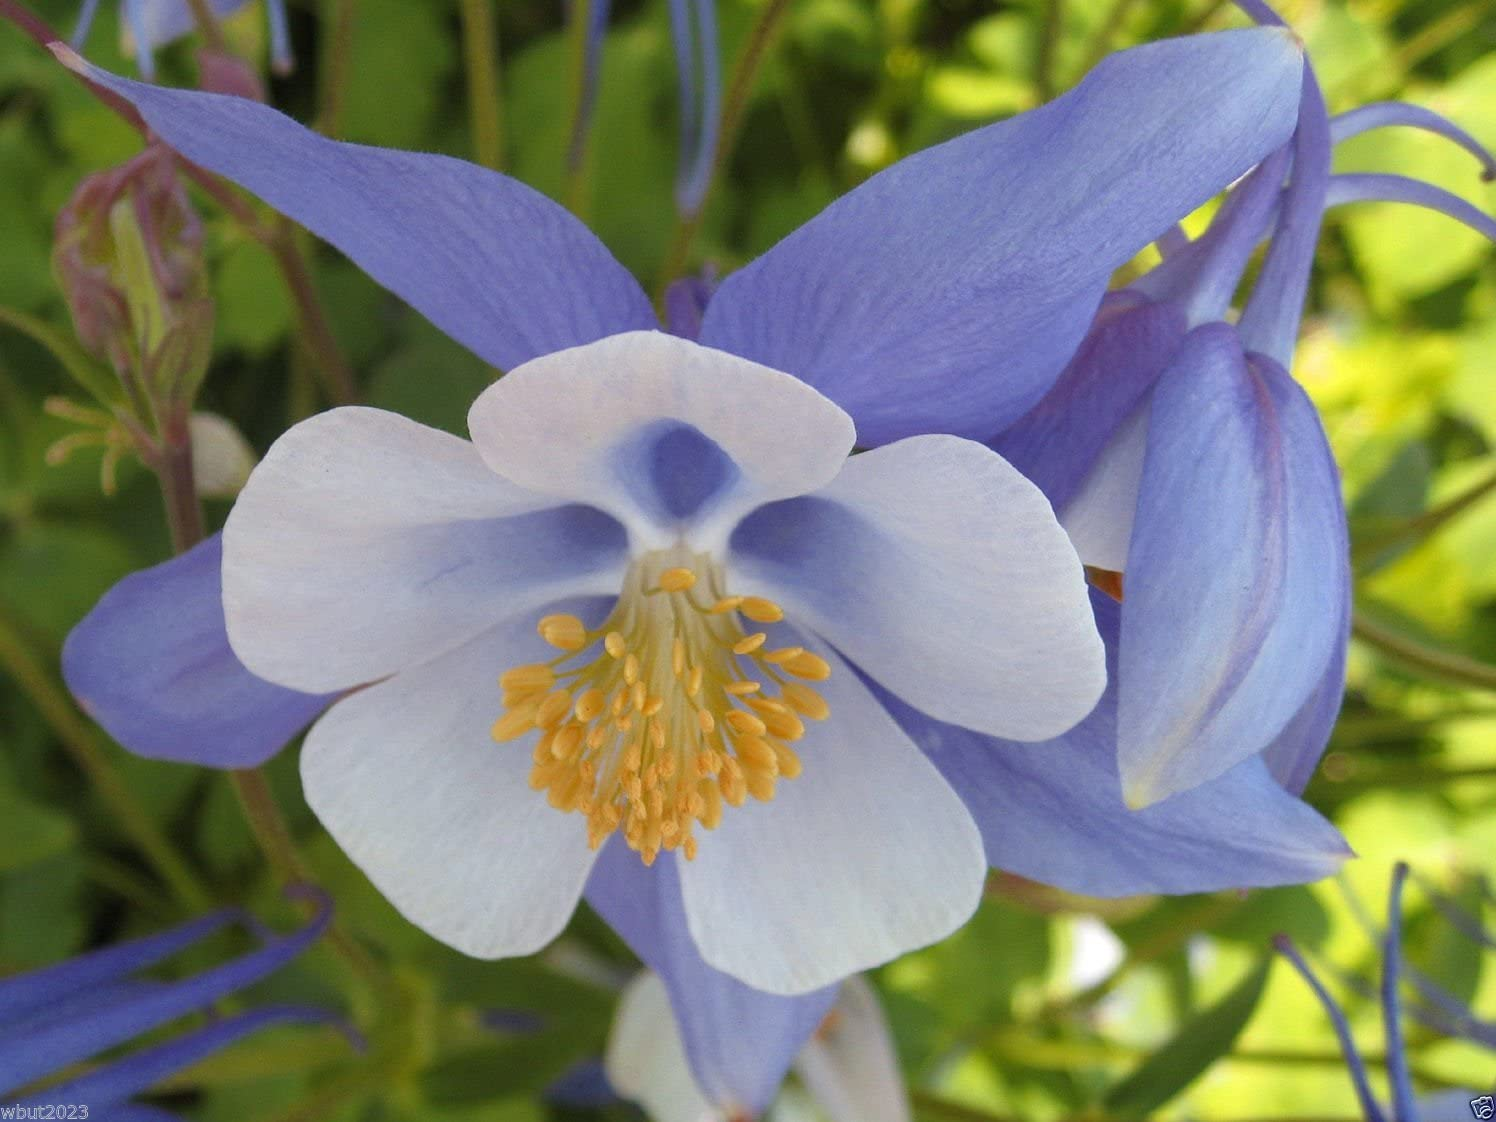 Amazon Com 100 Seeds Aquilegia Coerulea Colorado Blue Columbine